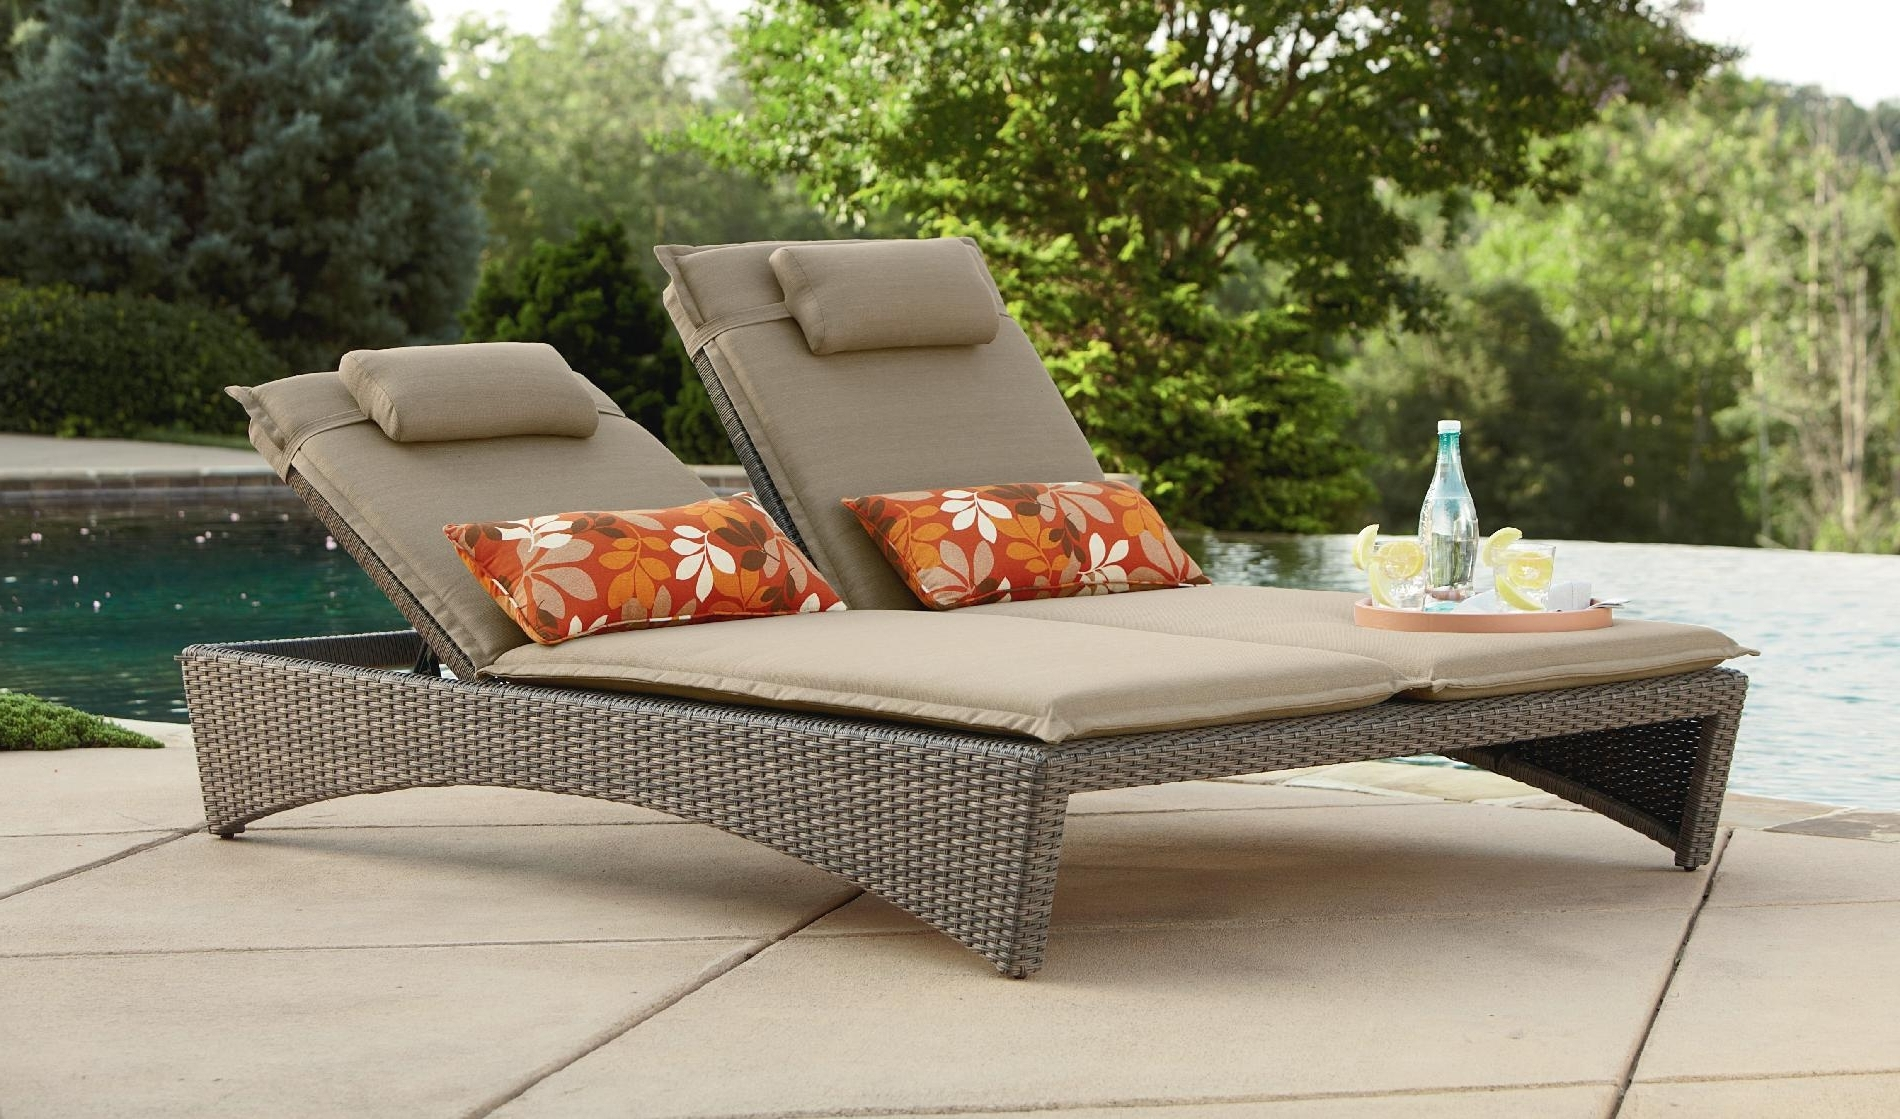 Chaise Lounge Chairs At Sears Regarding Well Known Sears Chaise Lounge Chairs Patio Furniture • Lounge Chairs Ideas (View 7 of 15)